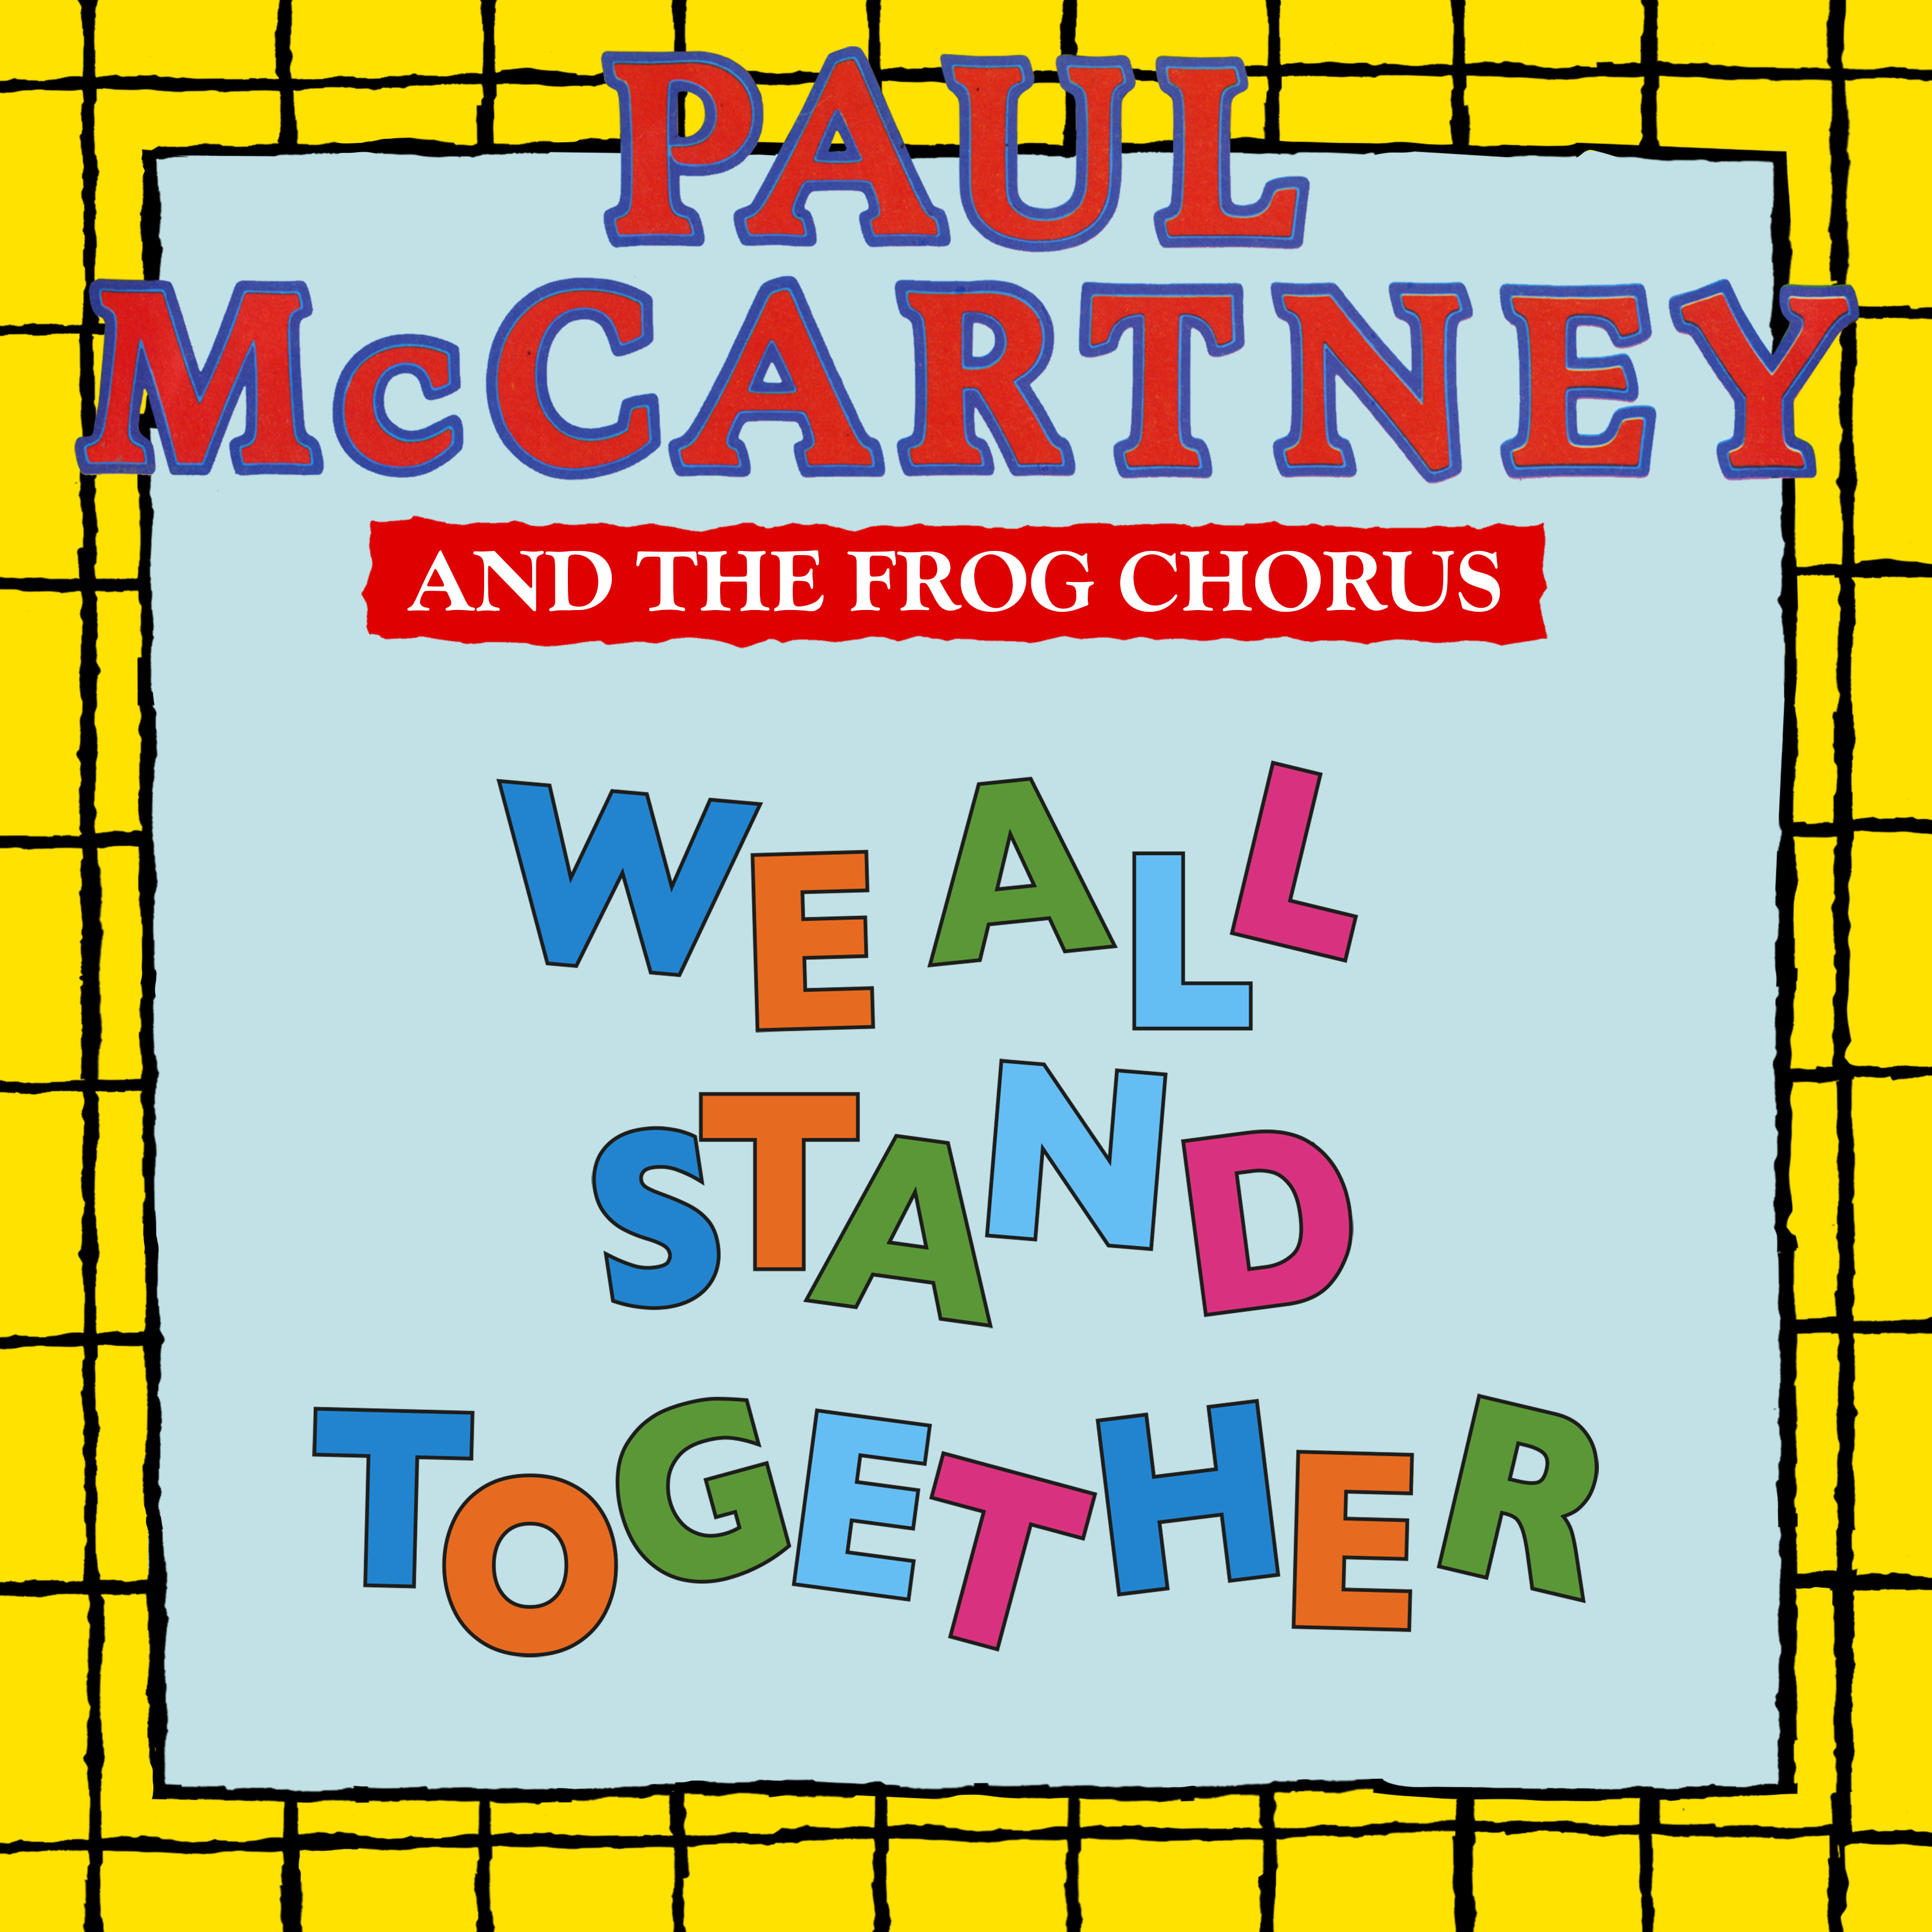 We All Stand Together - Paul McCartney